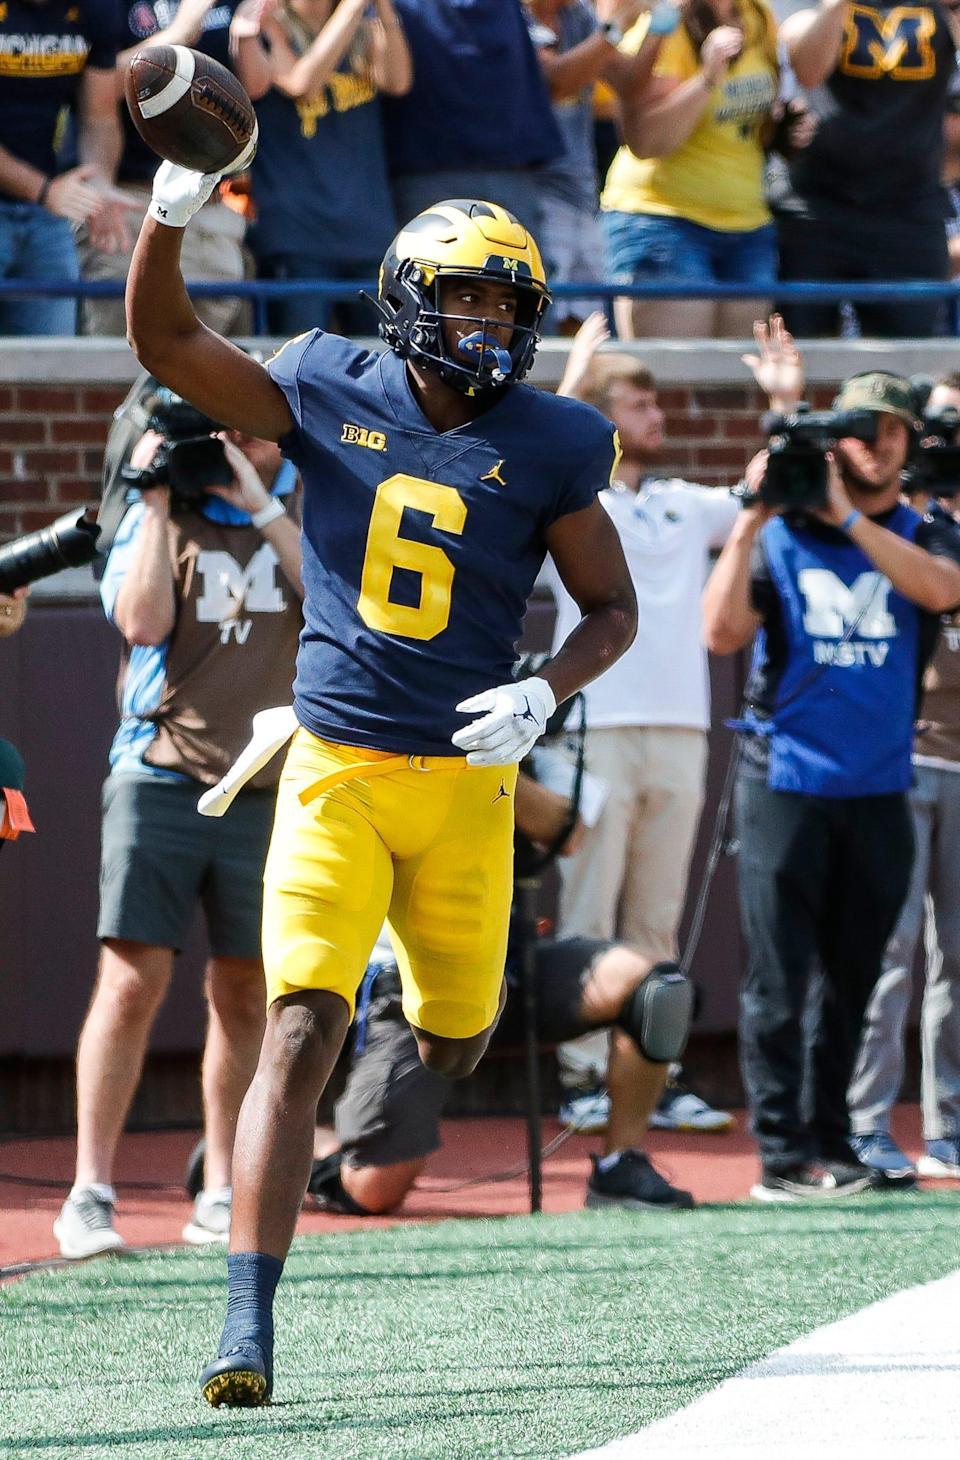 Michigan wide receiver Cornelius Johnson (6) scores a touchdown against Northern Illinois during the first half at Michigan Stadium in Ann Arbor on Saturday, Sept. 18, 2021.